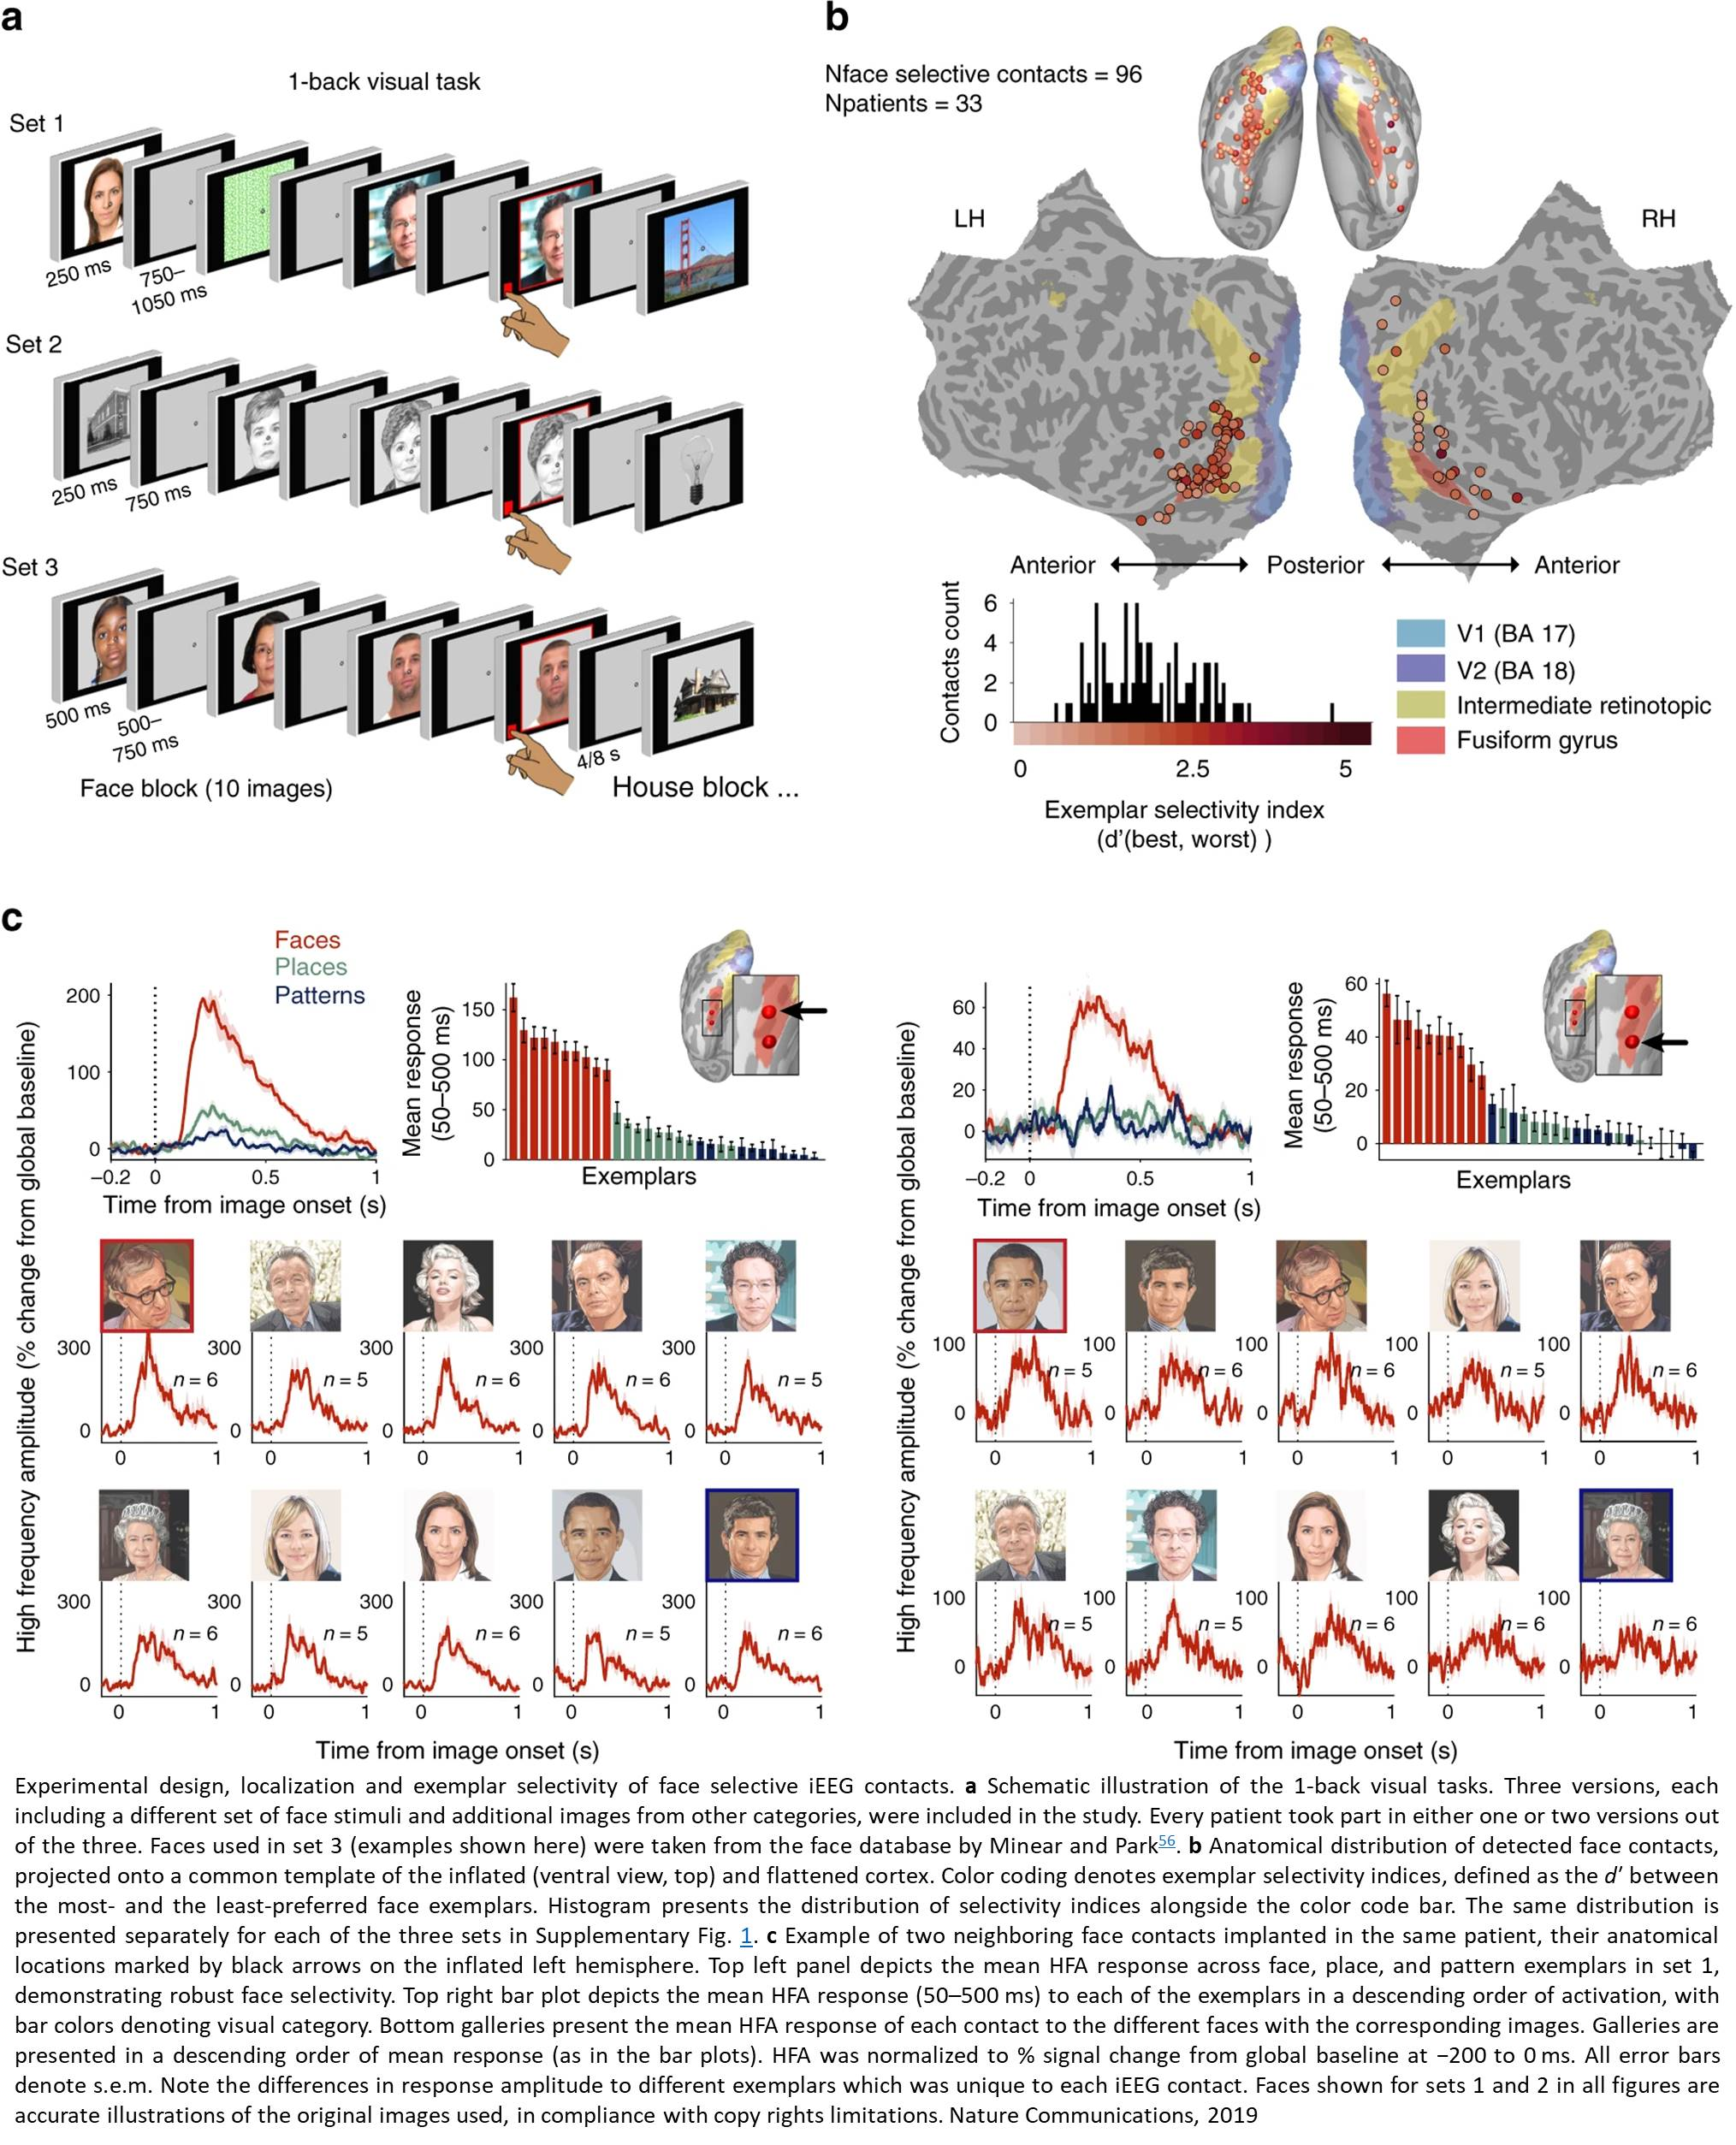 Human face recognition with artificial networks